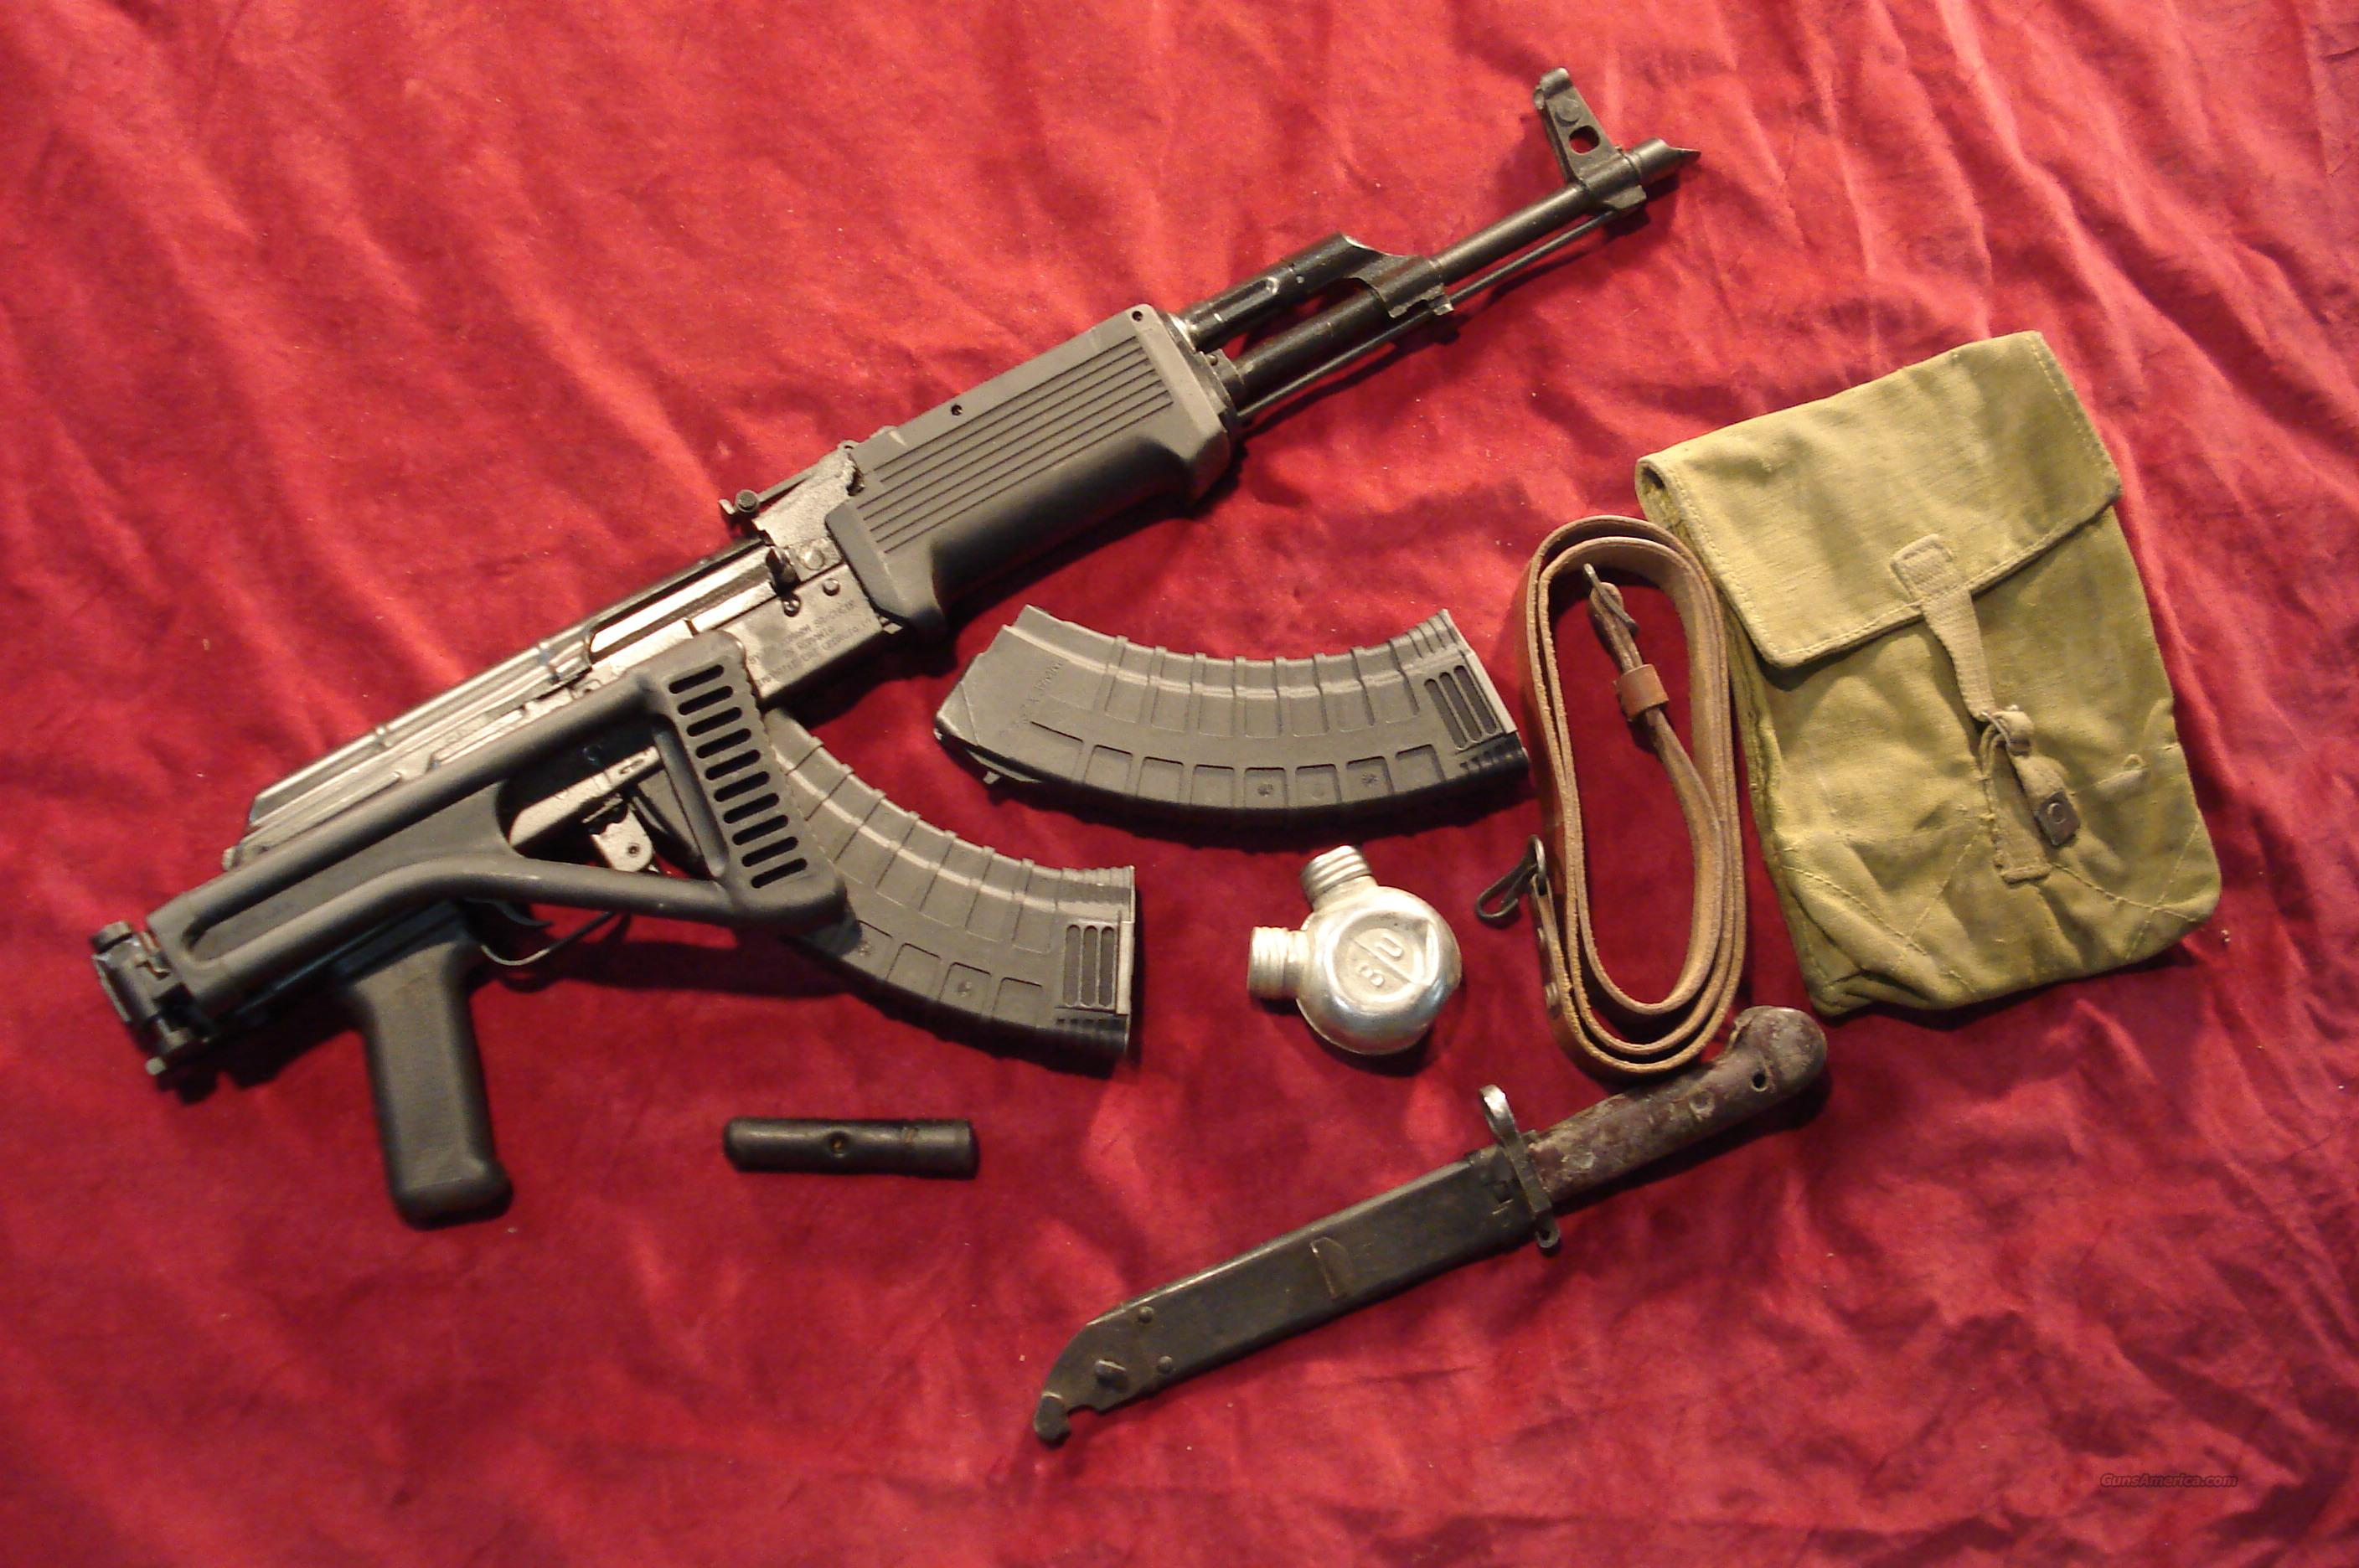 AK-47 SIDE FOLDING STOCK W/ ACC NEW  Guns > Rifles > AK-47 Rifles (and copies) > Folding Stock